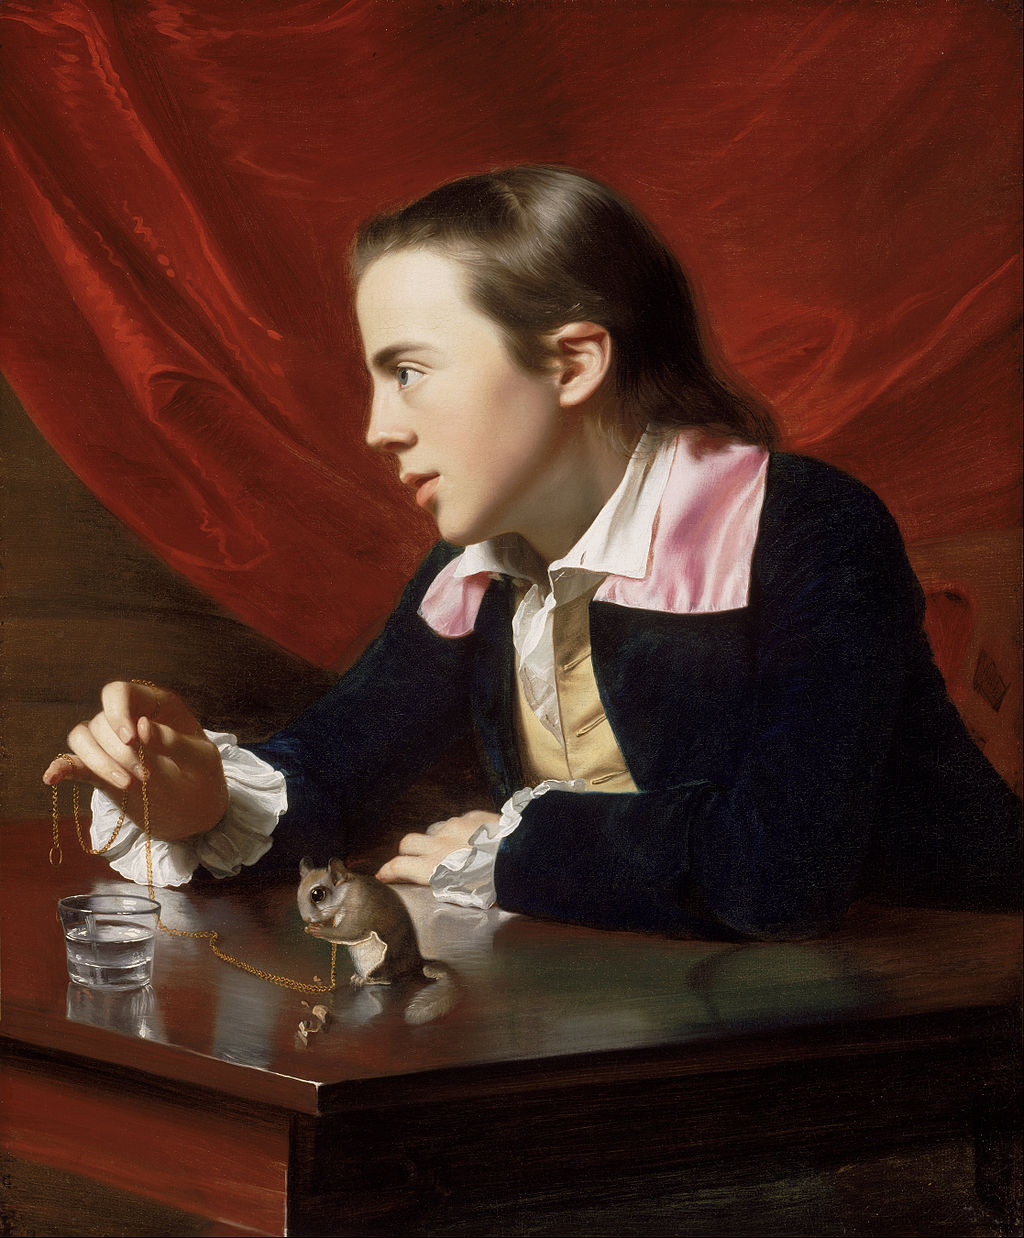 John Singleton Copley,  A Boy With a Flying Squirrel (Henry Pelham) , 1765.  Image courtesy of Wikimedia Commons.